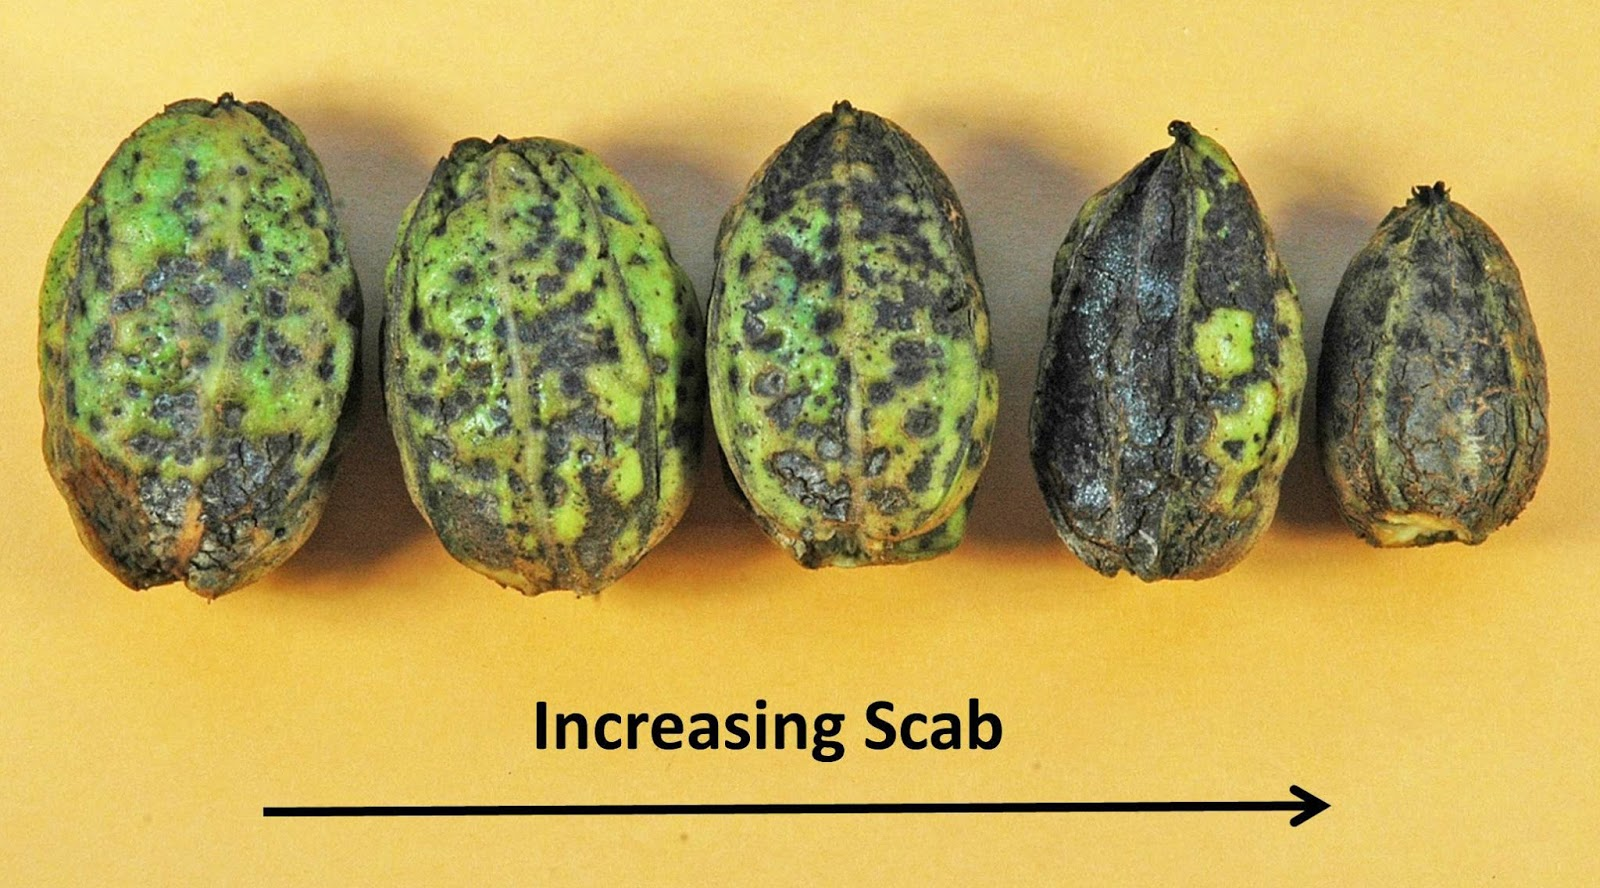 Northern Pecans: Impact of scab on Peruque pecan